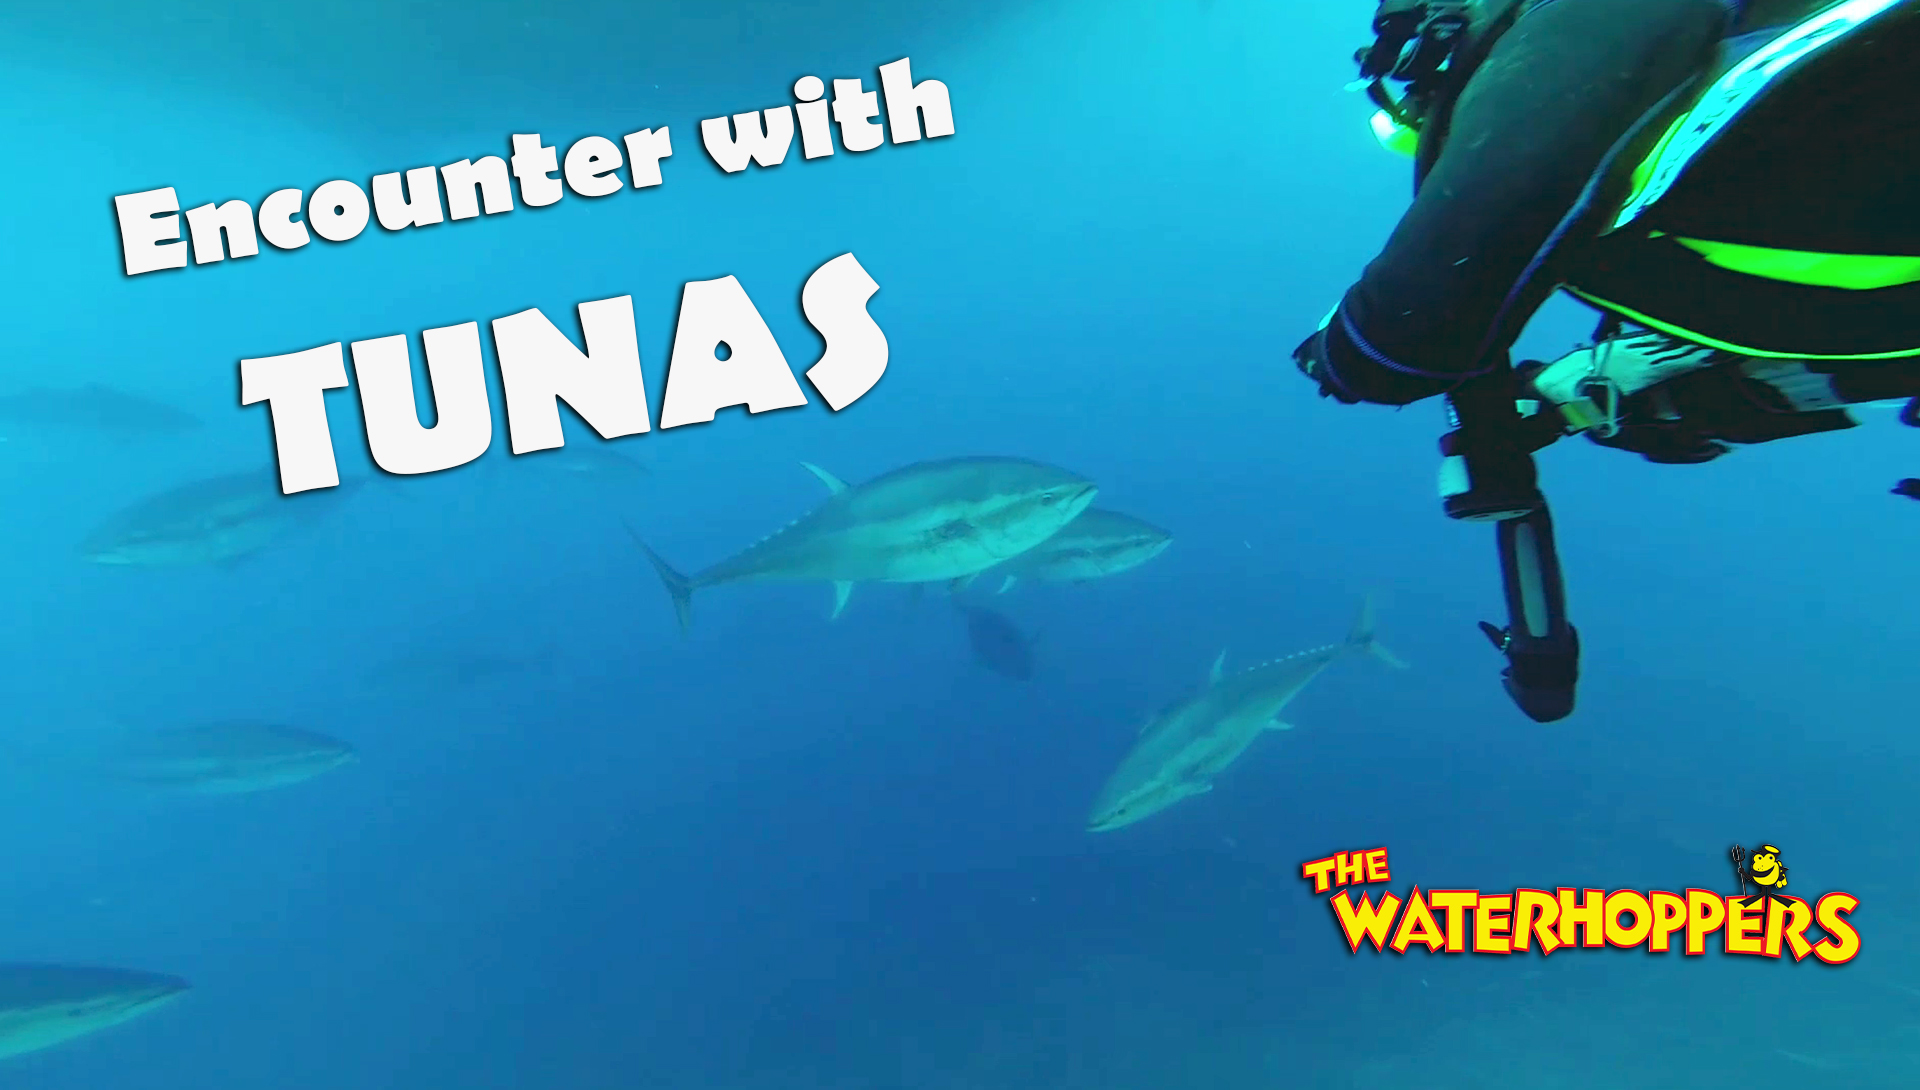 Lucky Divers encounter Tunas